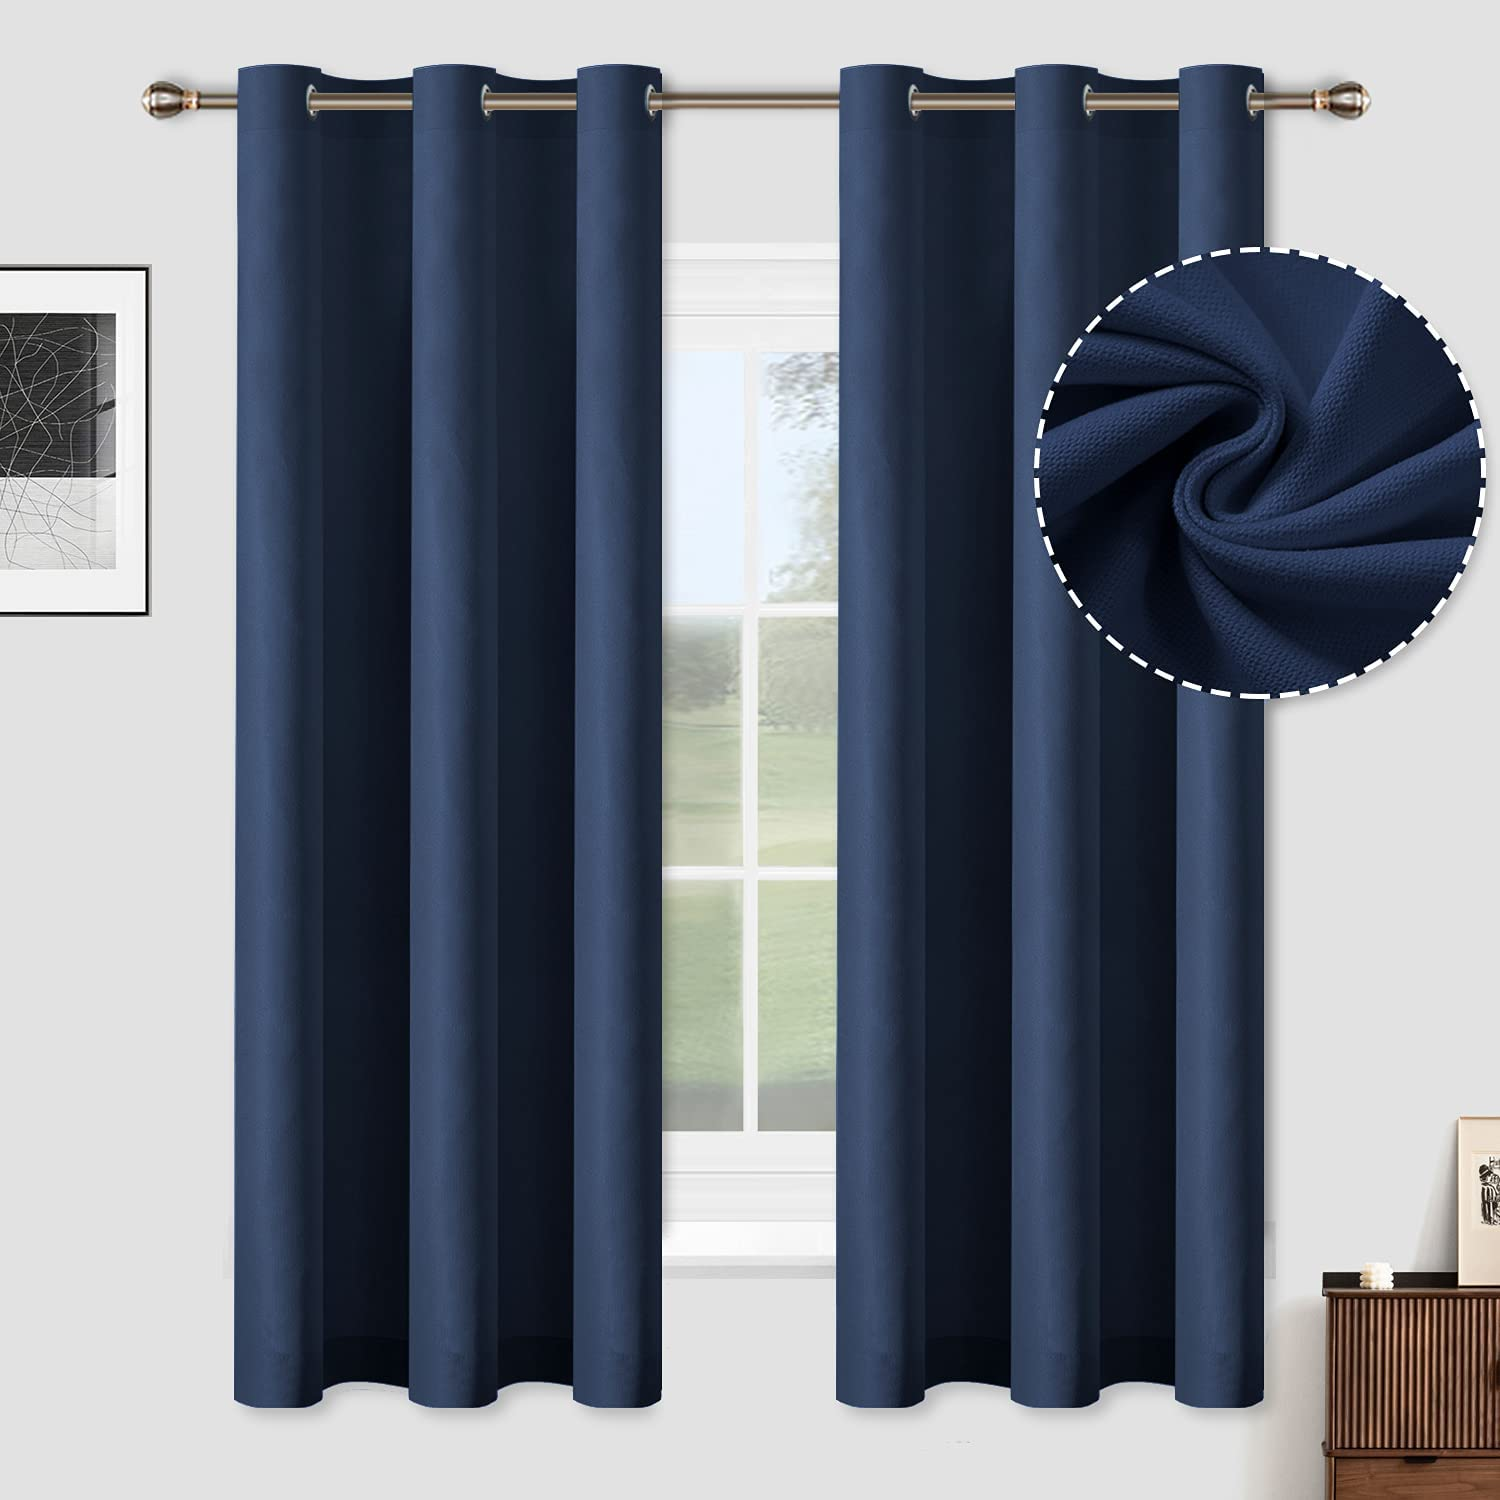 Over item Gorgeous handling ☆ ALLJOY Thick Window Blackout Curtains Long Bedroom63 Inches for